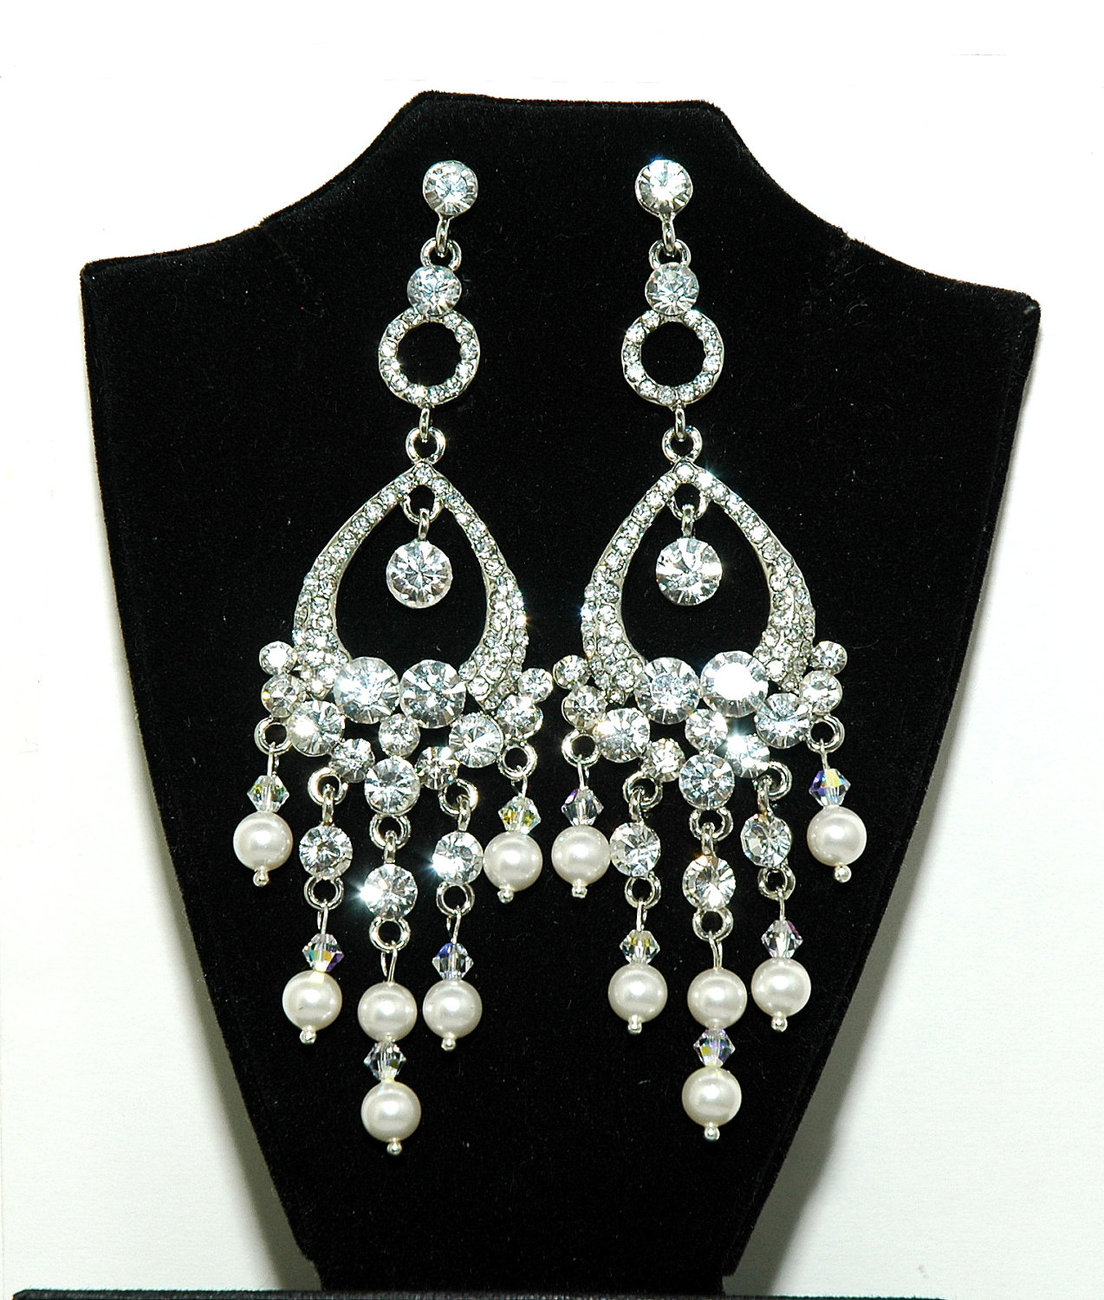 Design450450 Bridal Chandelier Earrings with Pearls Wedding – Vintage Bridal Chandelier Earrings